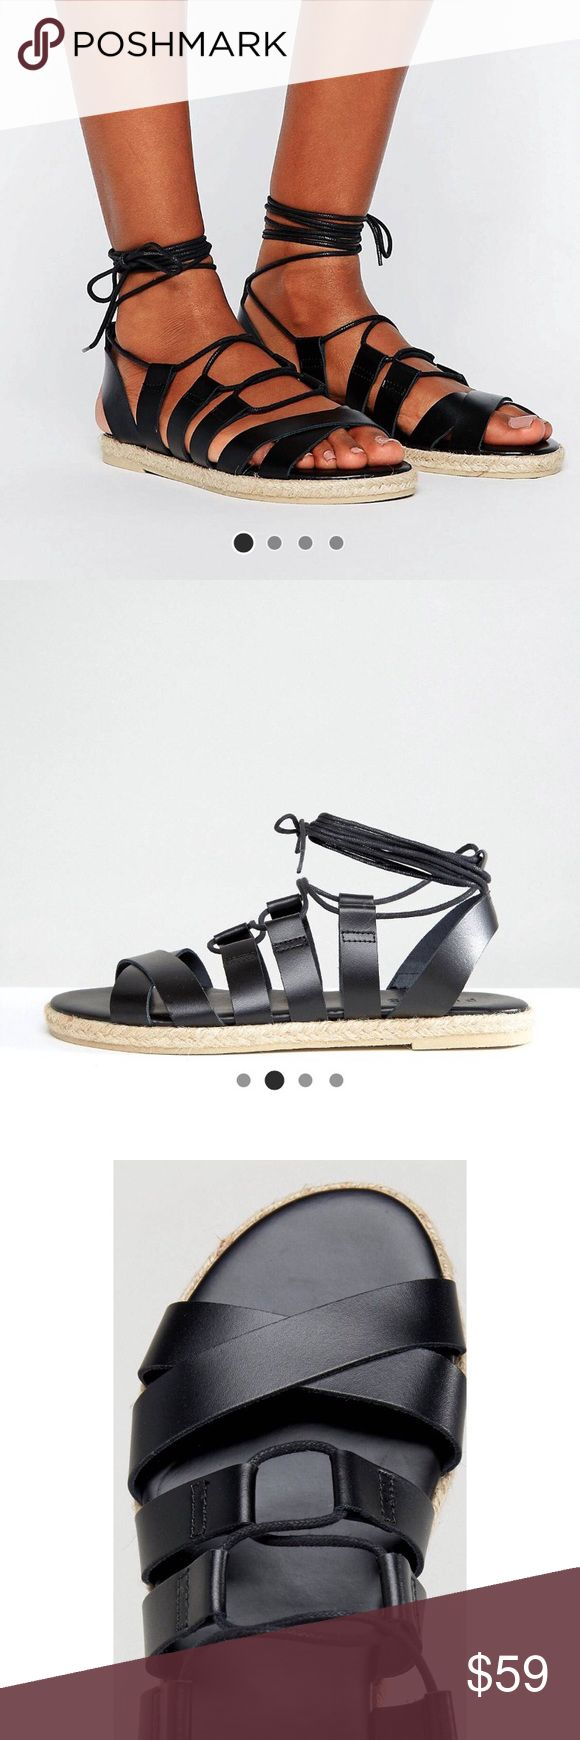 PIECES  •  Louisa leather Espadrille Sandals Brand new in box. True to size. Branded as UO for exposure only (!). Purchased from ASOS website. Leather upper, ankle-tie fastening, woven sole. No returns. Open to offers. Urban Outfitters Shoes Espadrilles